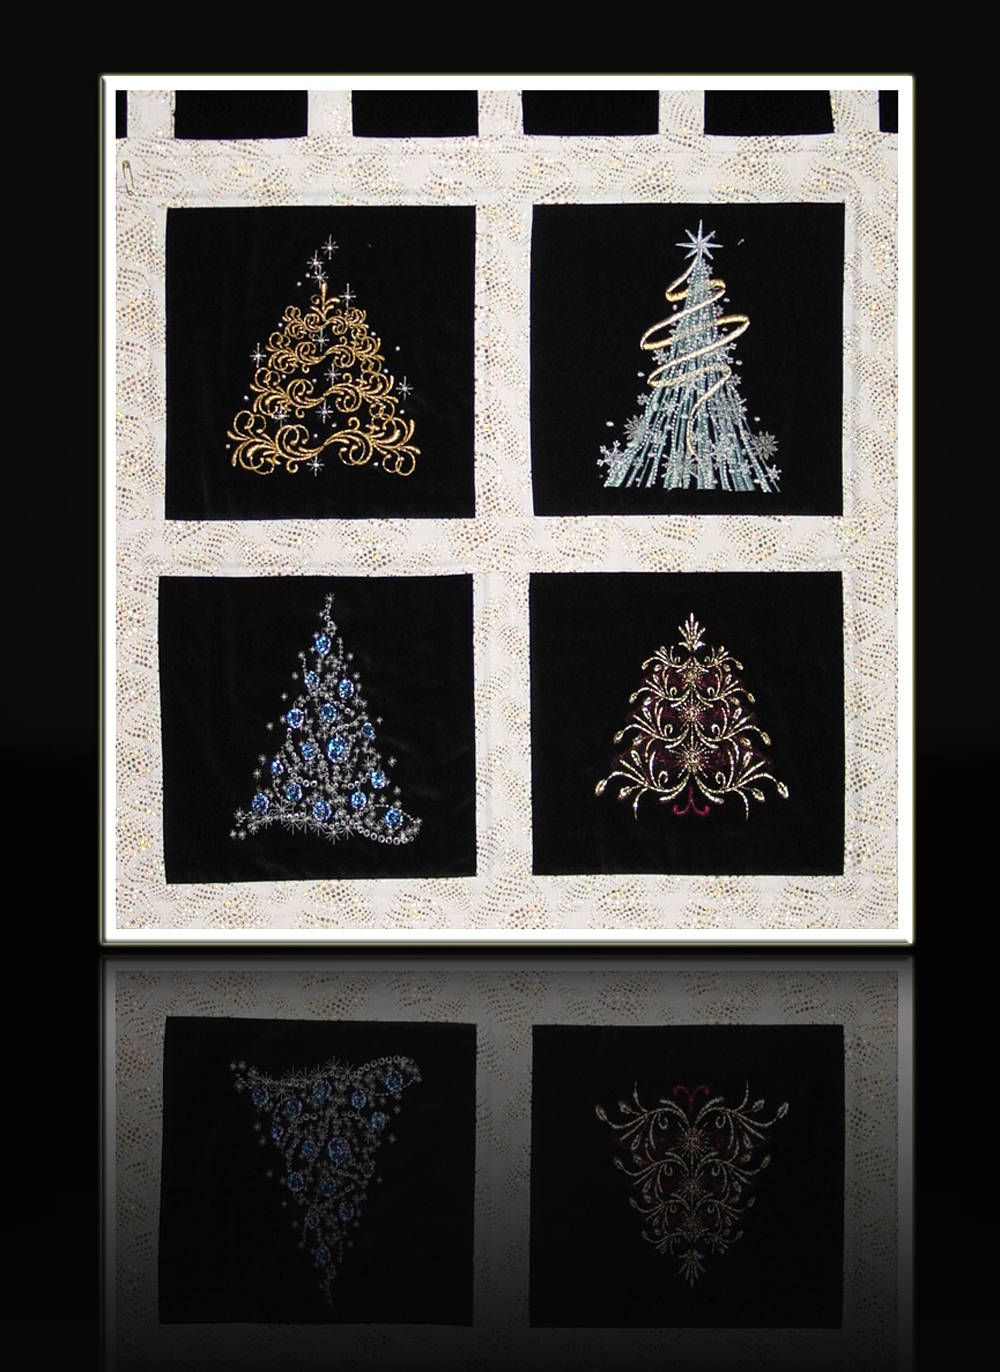 Christmas Tree Wall Decor Christmas Gift Embroidered Sparkly Metallic 4 Tree Designs 20 X20 Handmade Designed By Mary Brader 527 Christmas Wall Decor Tree Wall Decor Handmade Christmas Tree